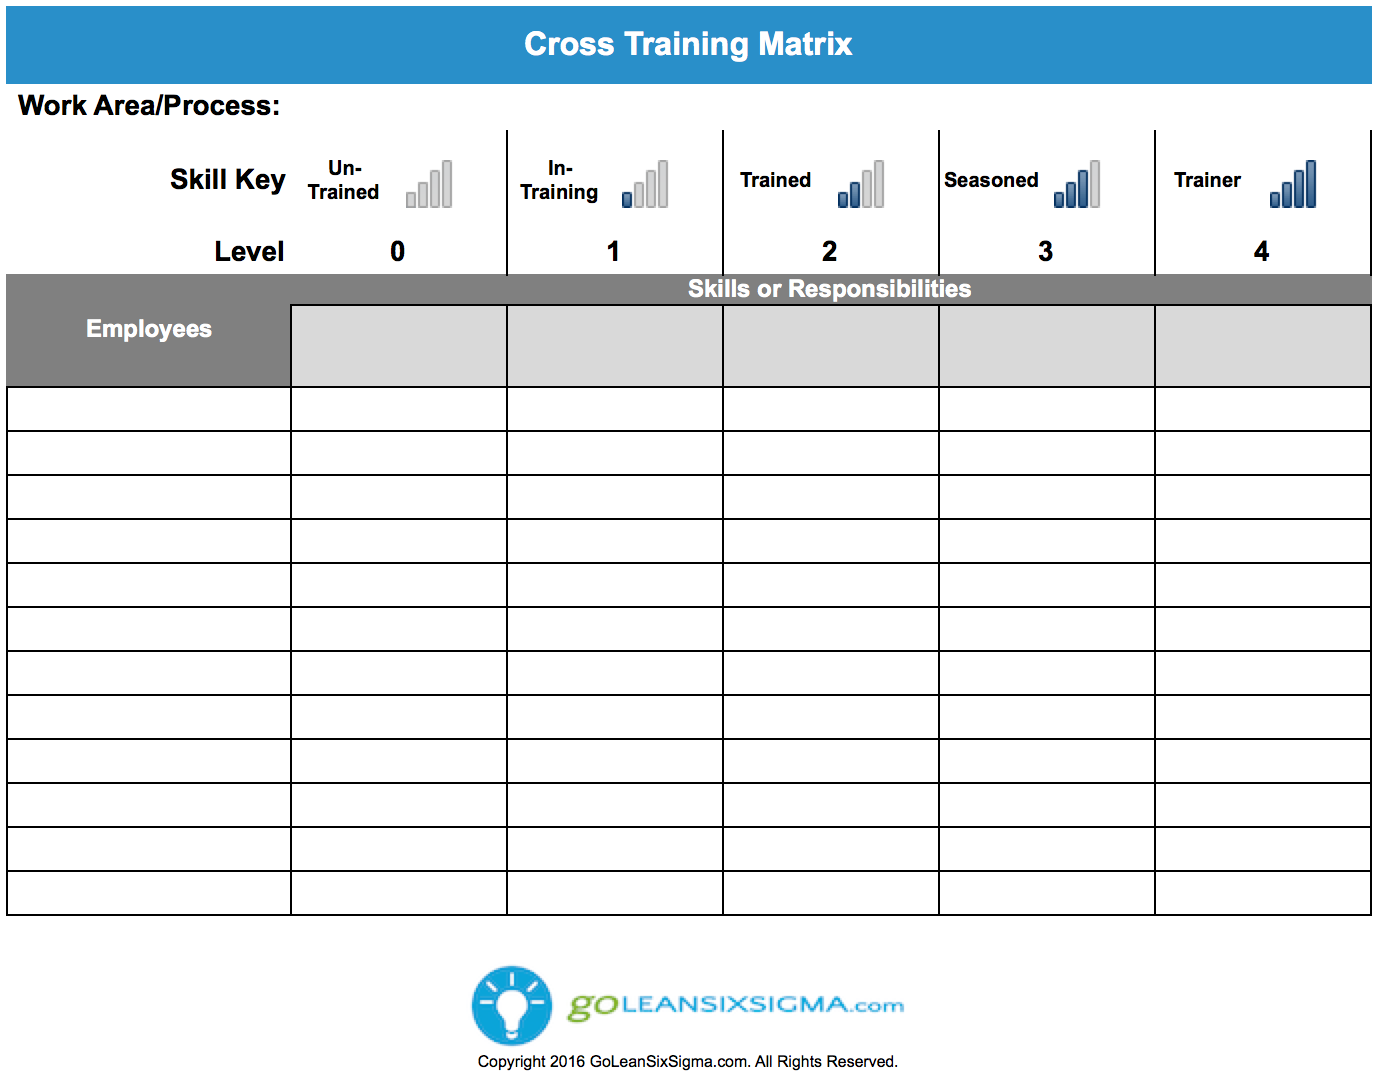 CrossTraining Matrix  Cross Training Template And Craft